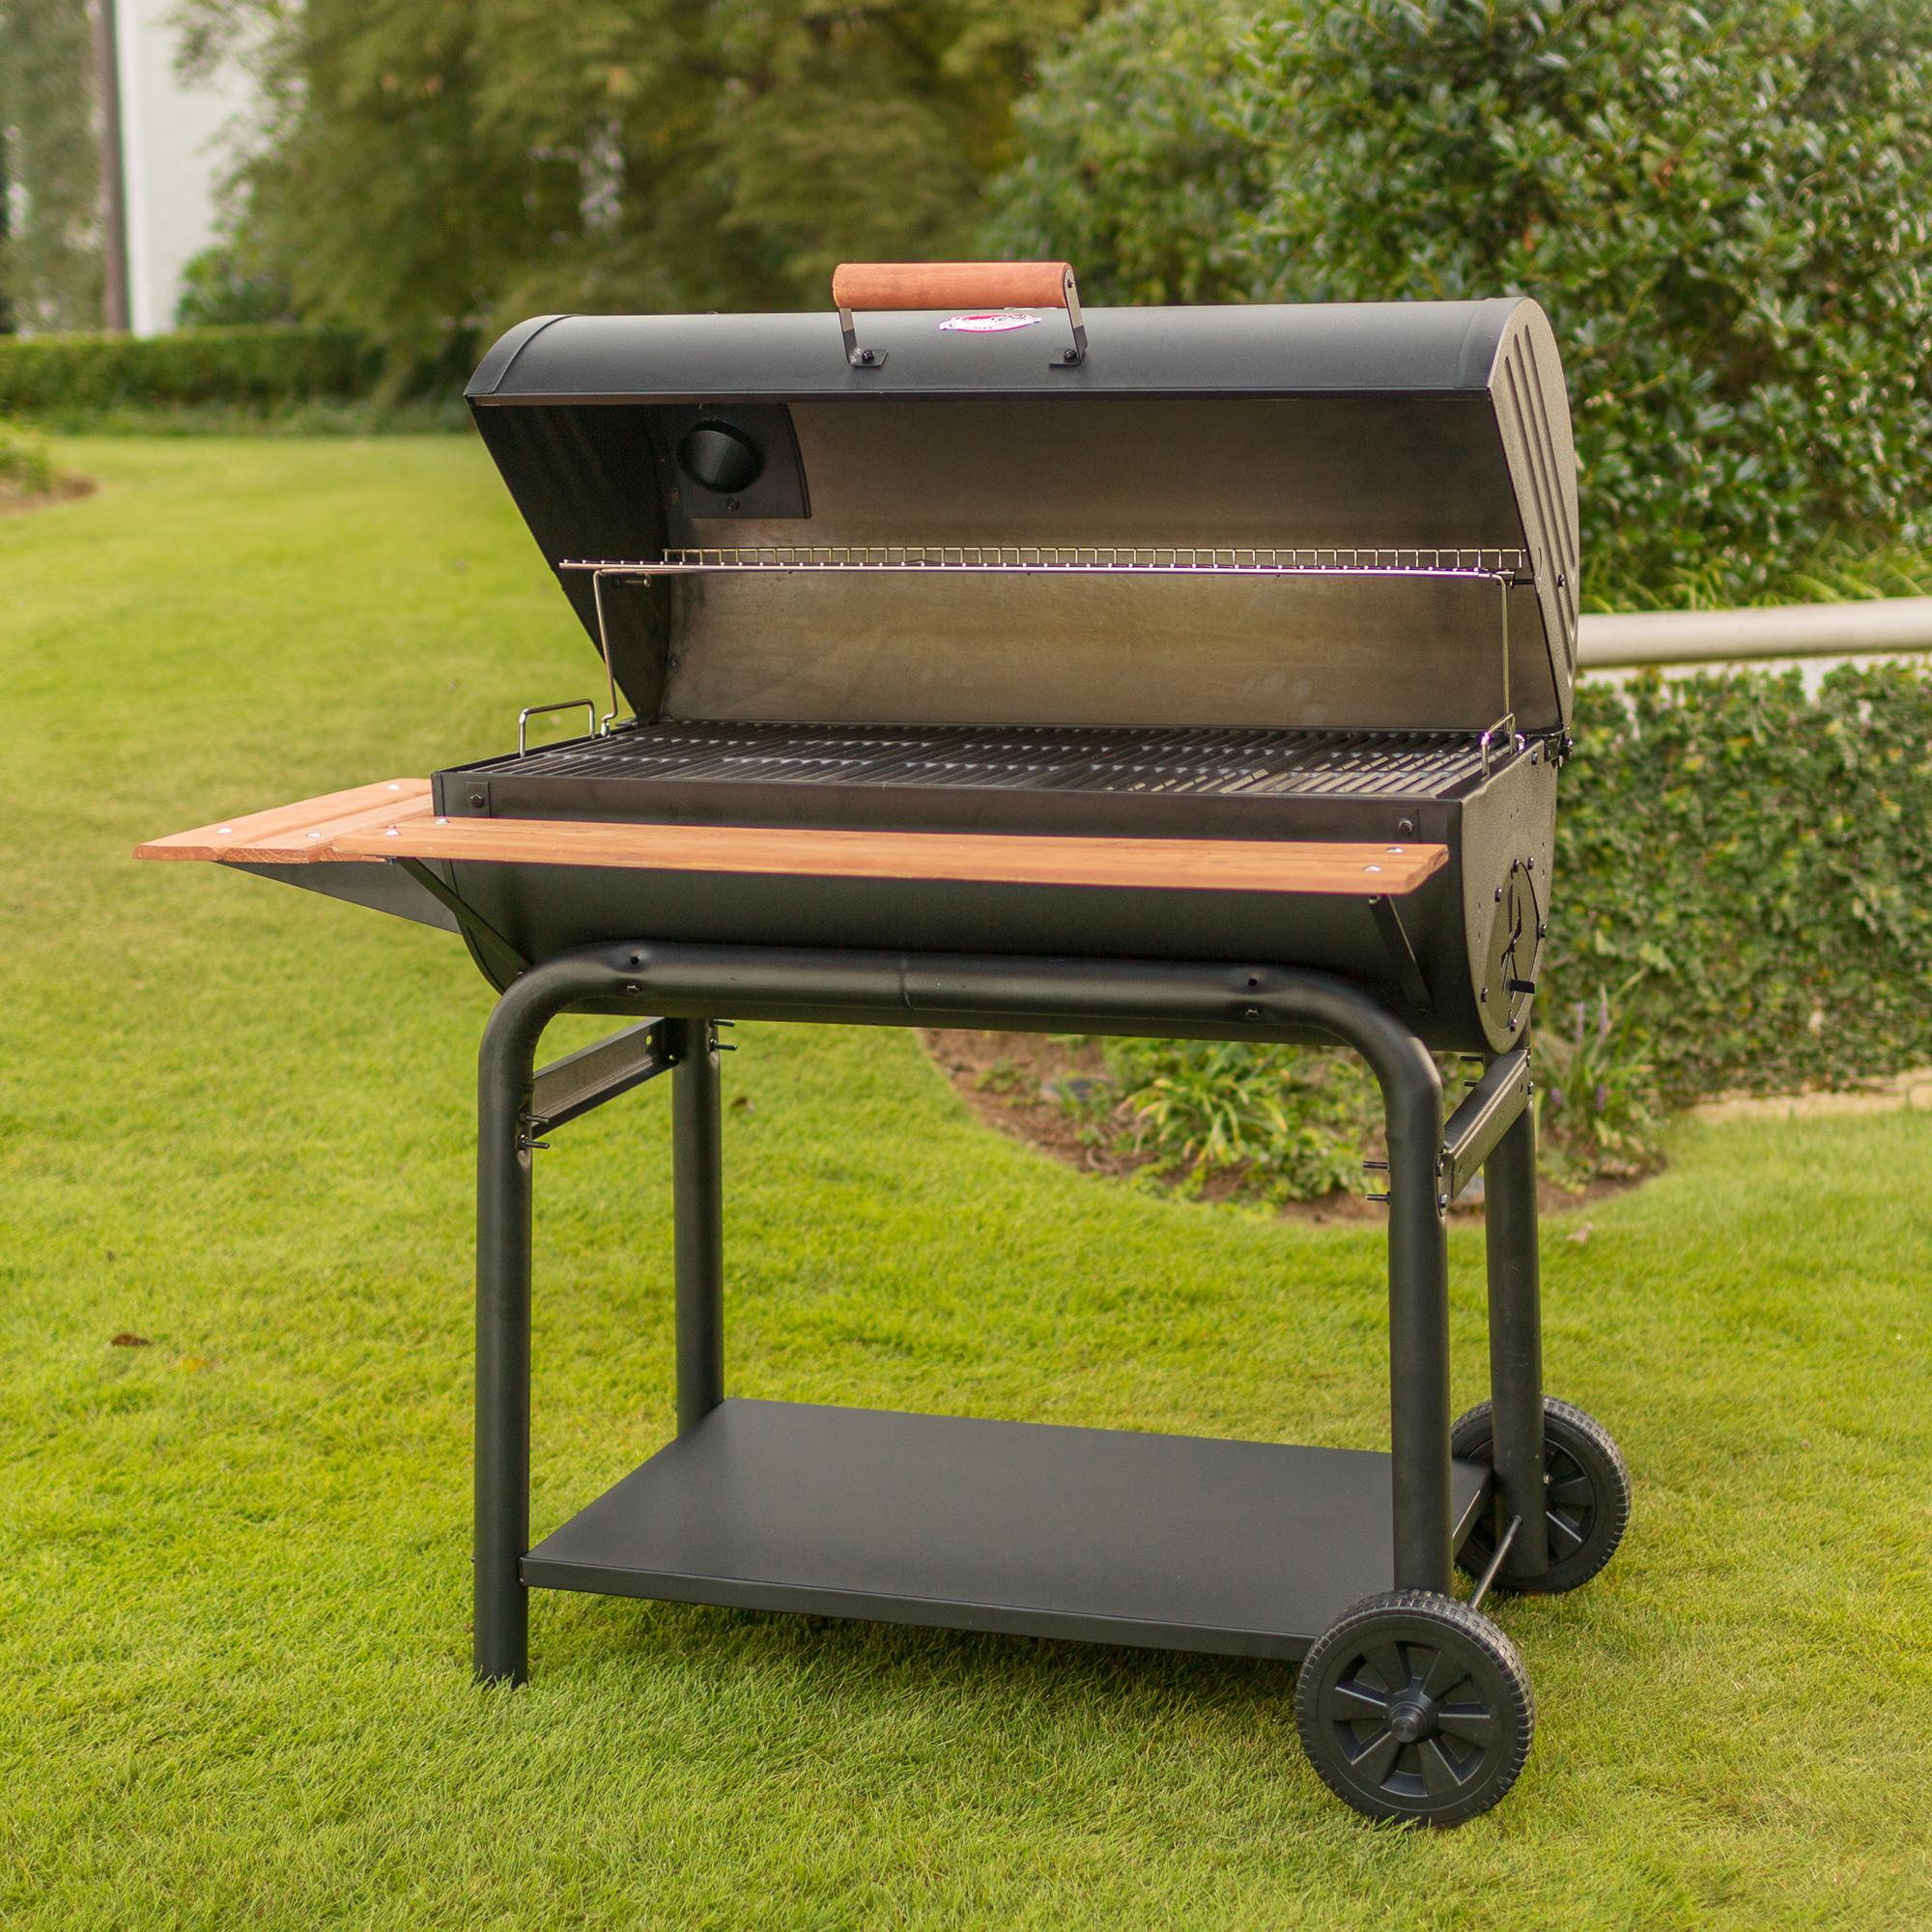 char griller 2137 outlaw 1063 square inch charcoal grill smoker garden outdoor. Black Bedroom Furniture Sets. Home Design Ideas